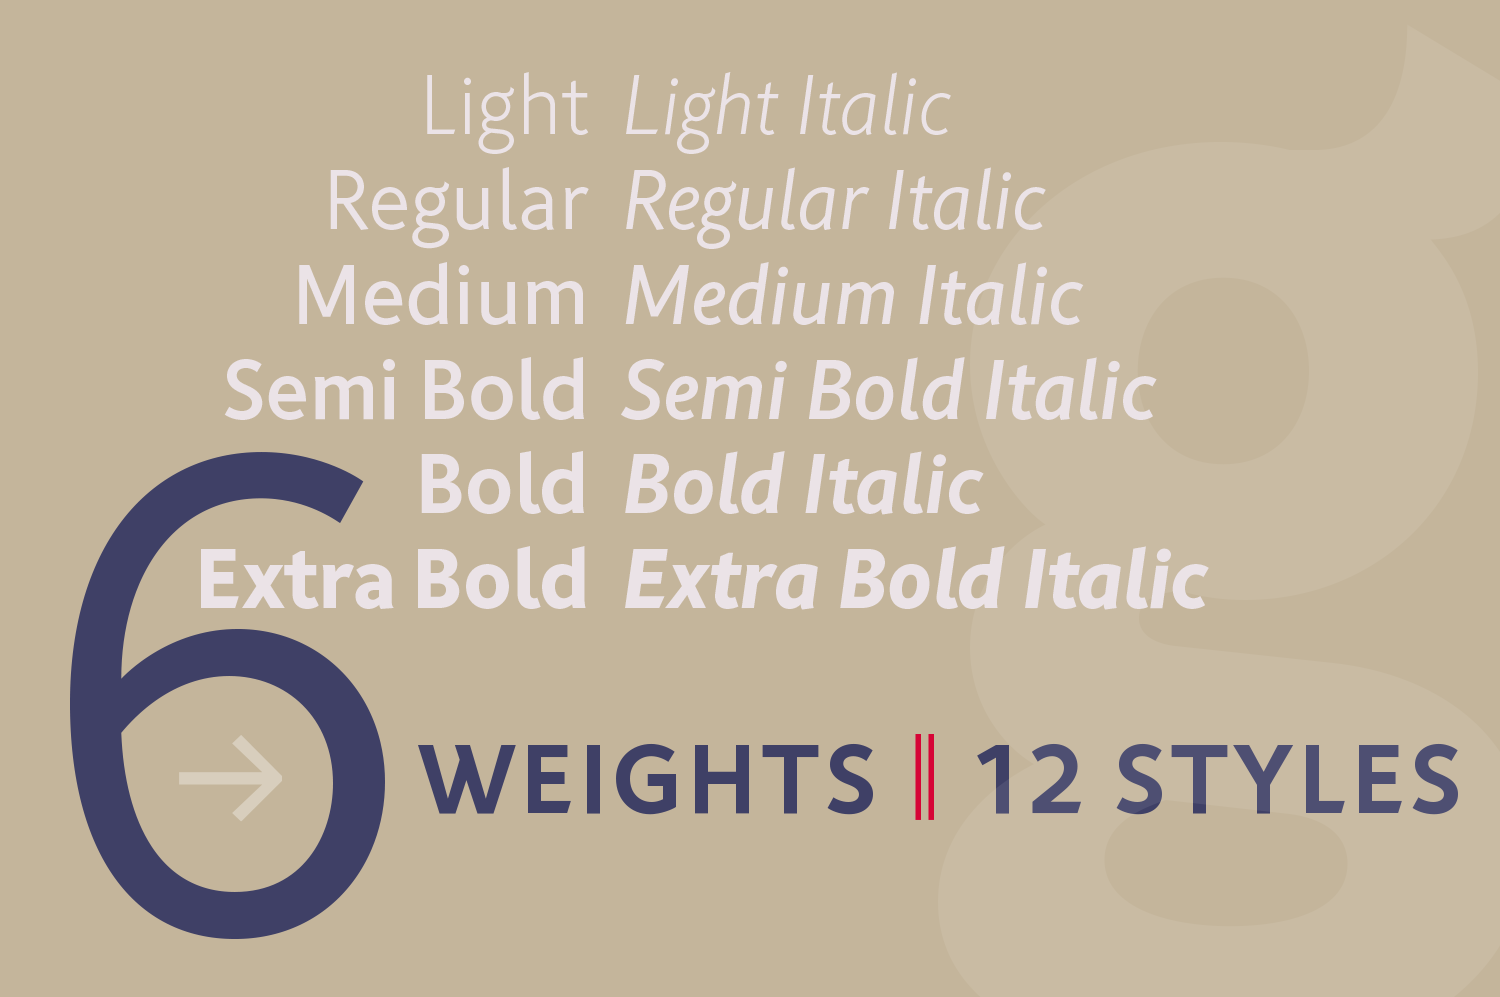 Rahere Sans consists of 6 weights and 12 styles